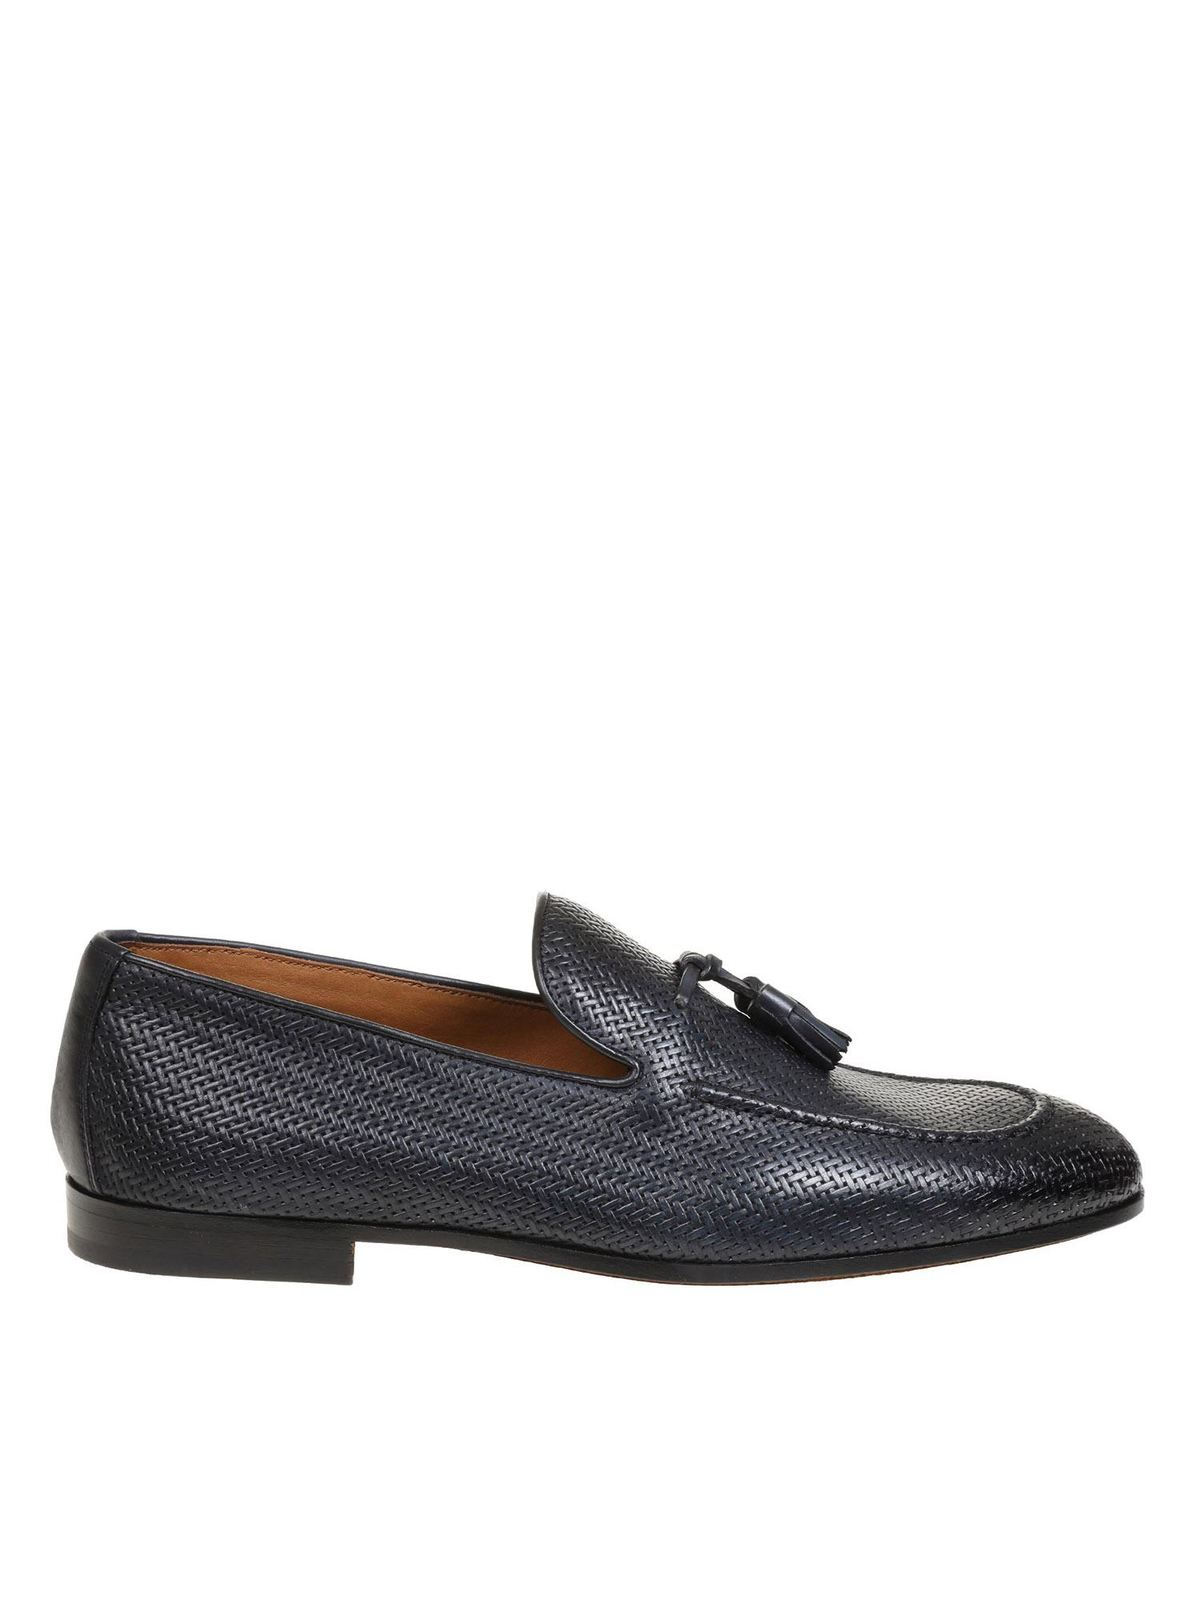 Doucal's WOVEN LEATHER LOAFERS IN BLUE